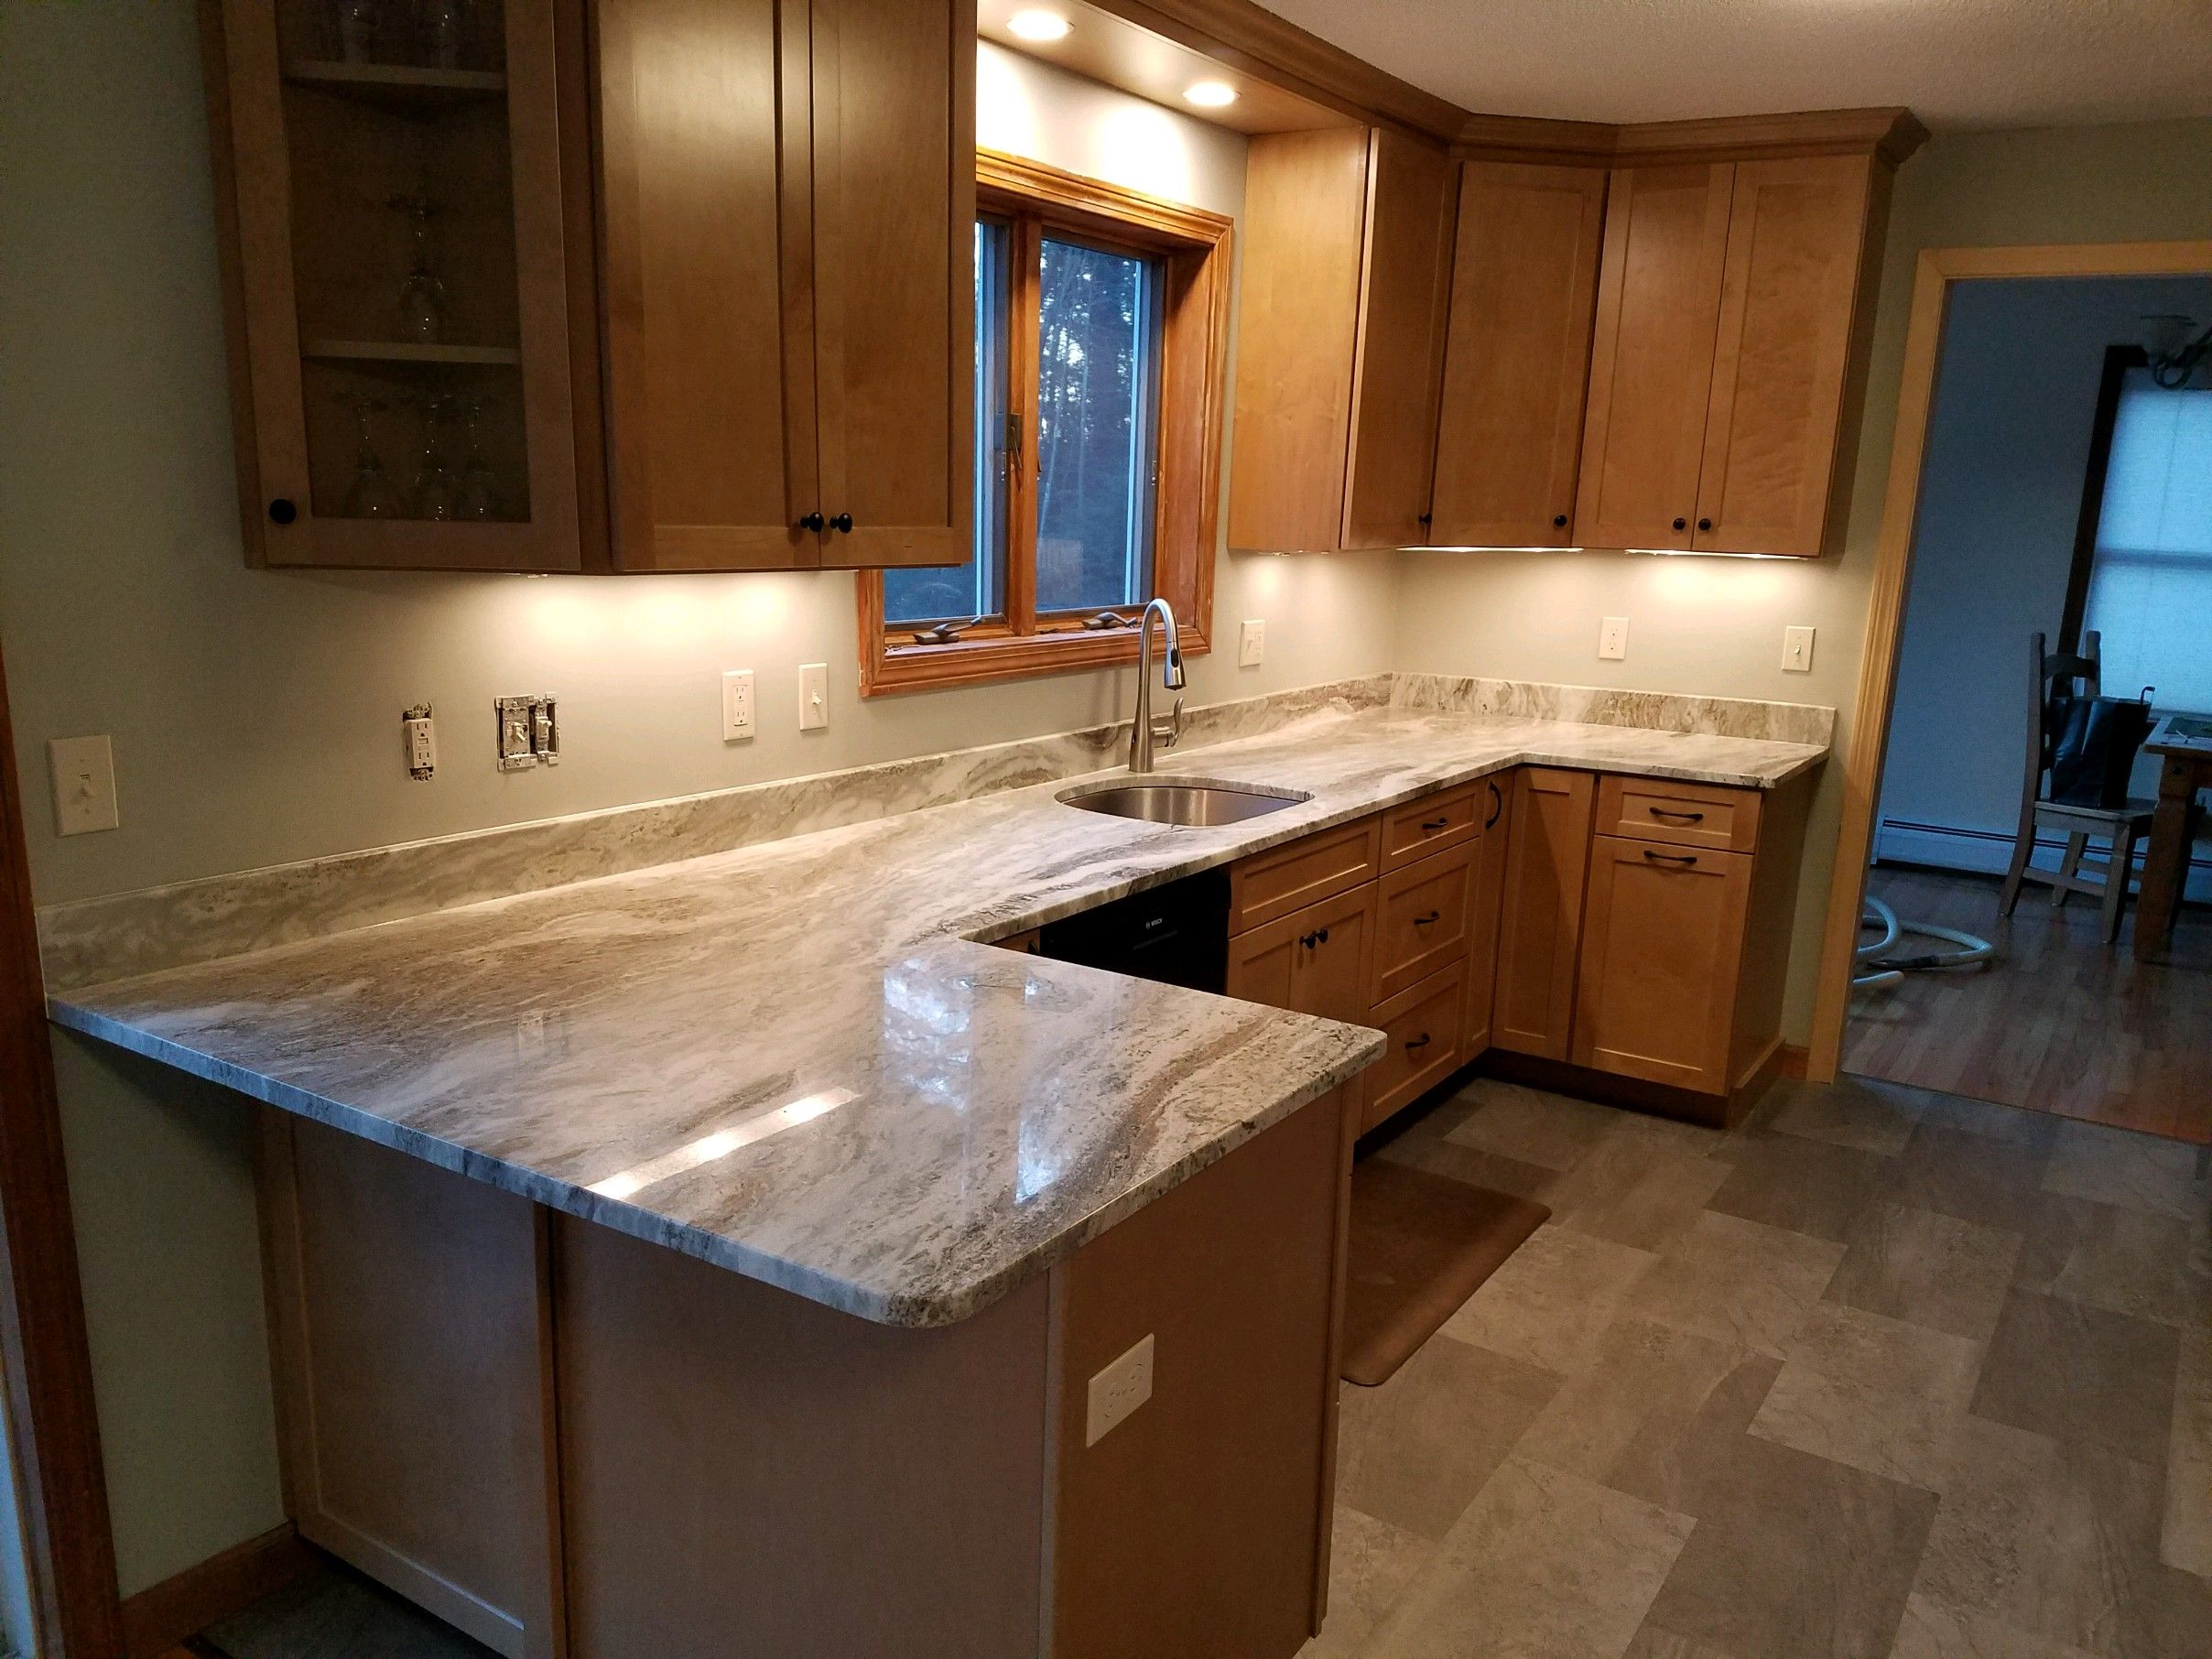 Kitchen With Waypoint Cabinets In Maple Color Rye Floor Is Adura Mannington Vinyl Floor Kitchen Cabinets And Countertops Maple Kitchen Cabinets Kitchen Layout